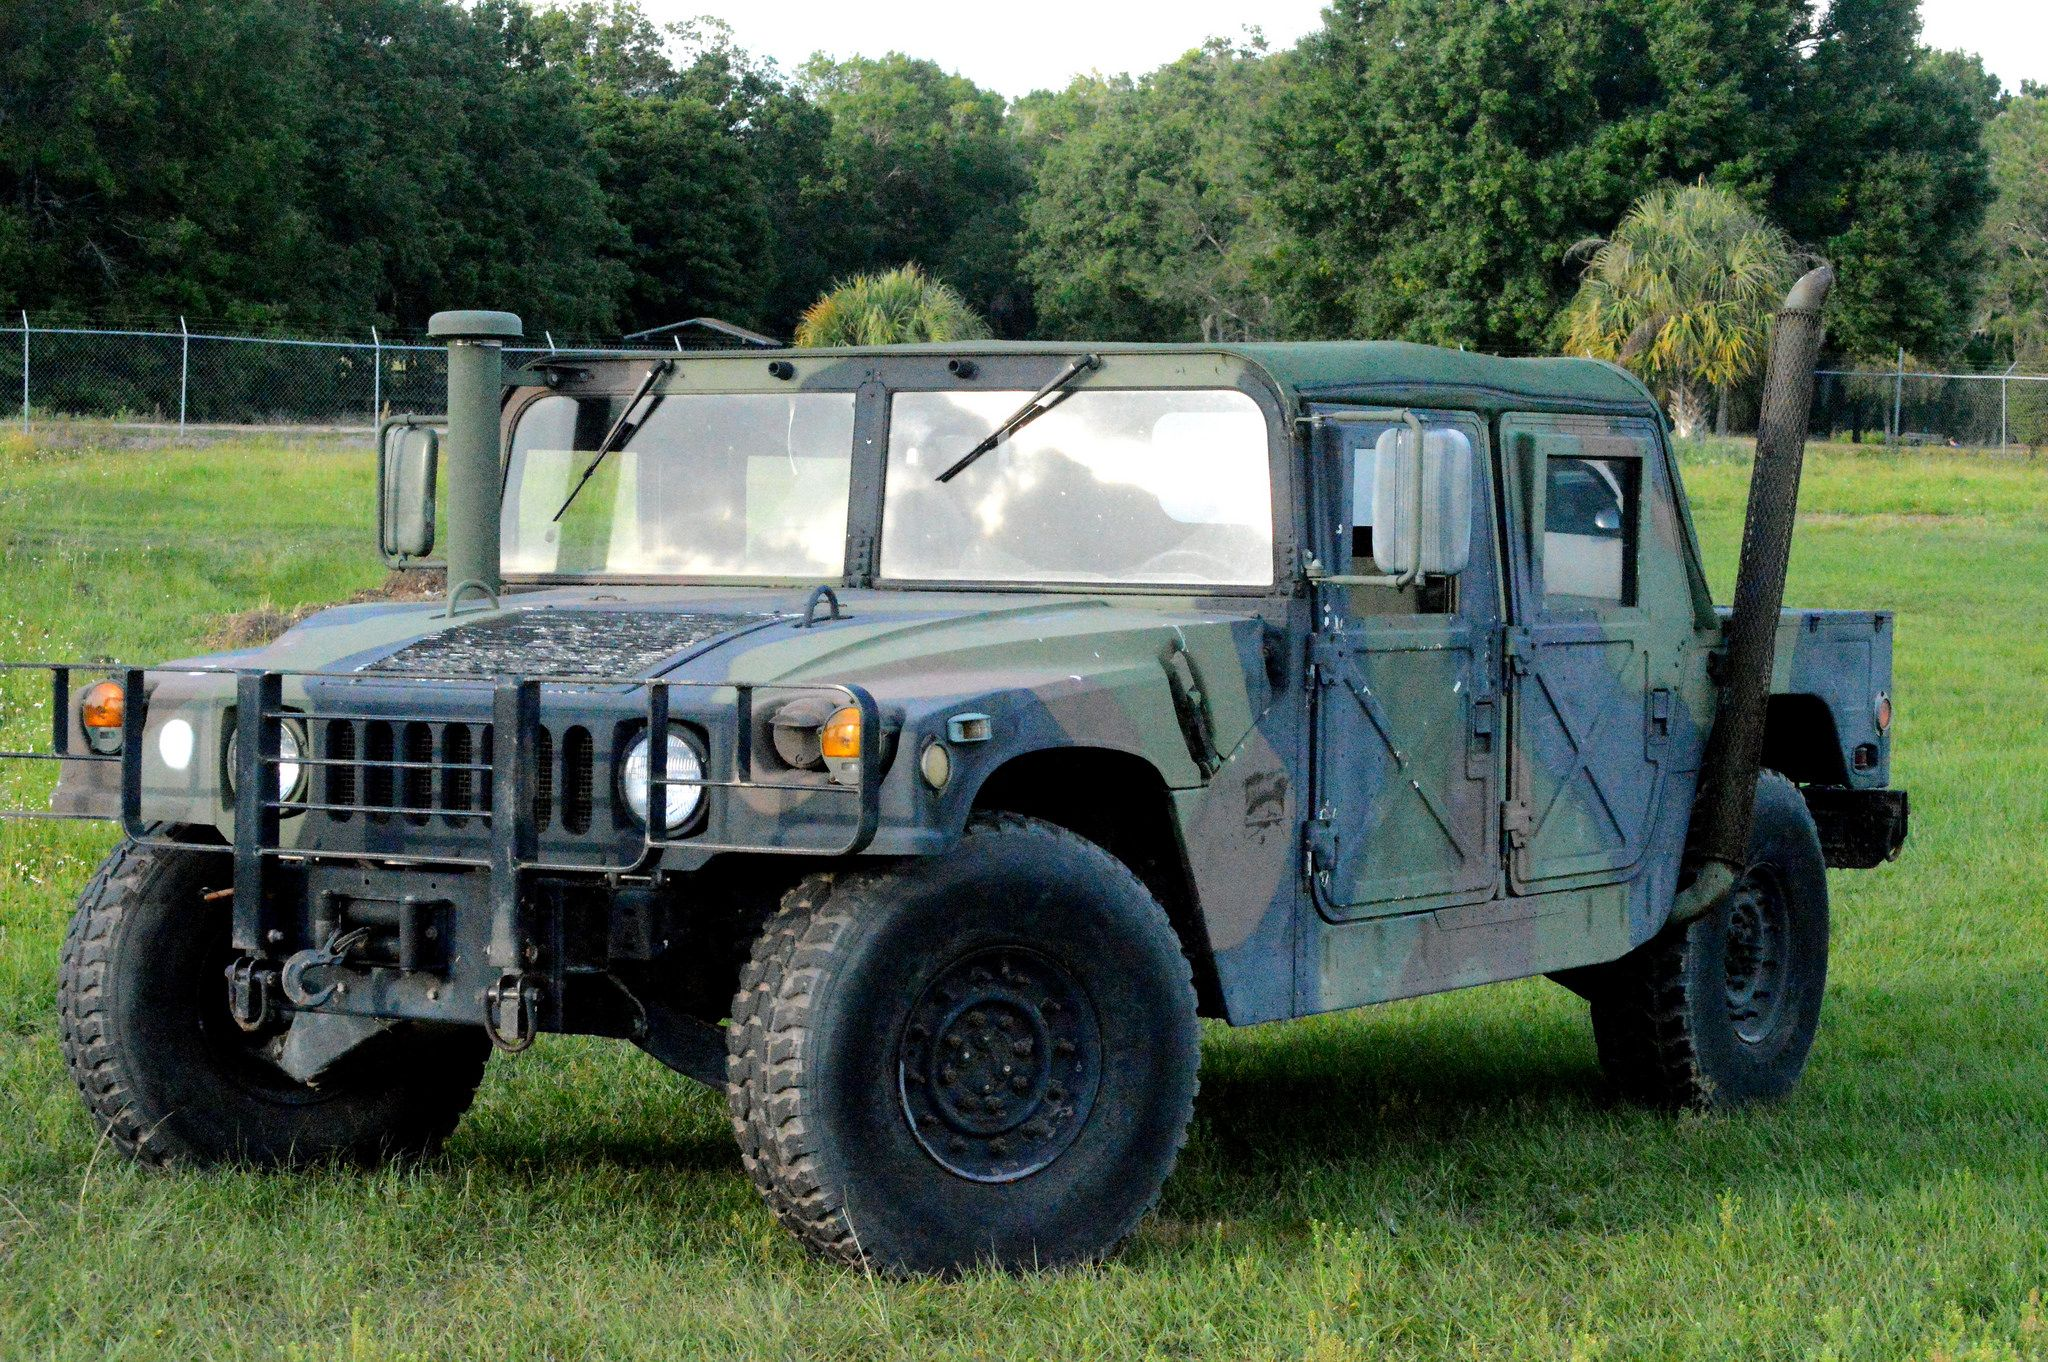 Buy a Military-Grade Humvee and Dominate Your Local Trails